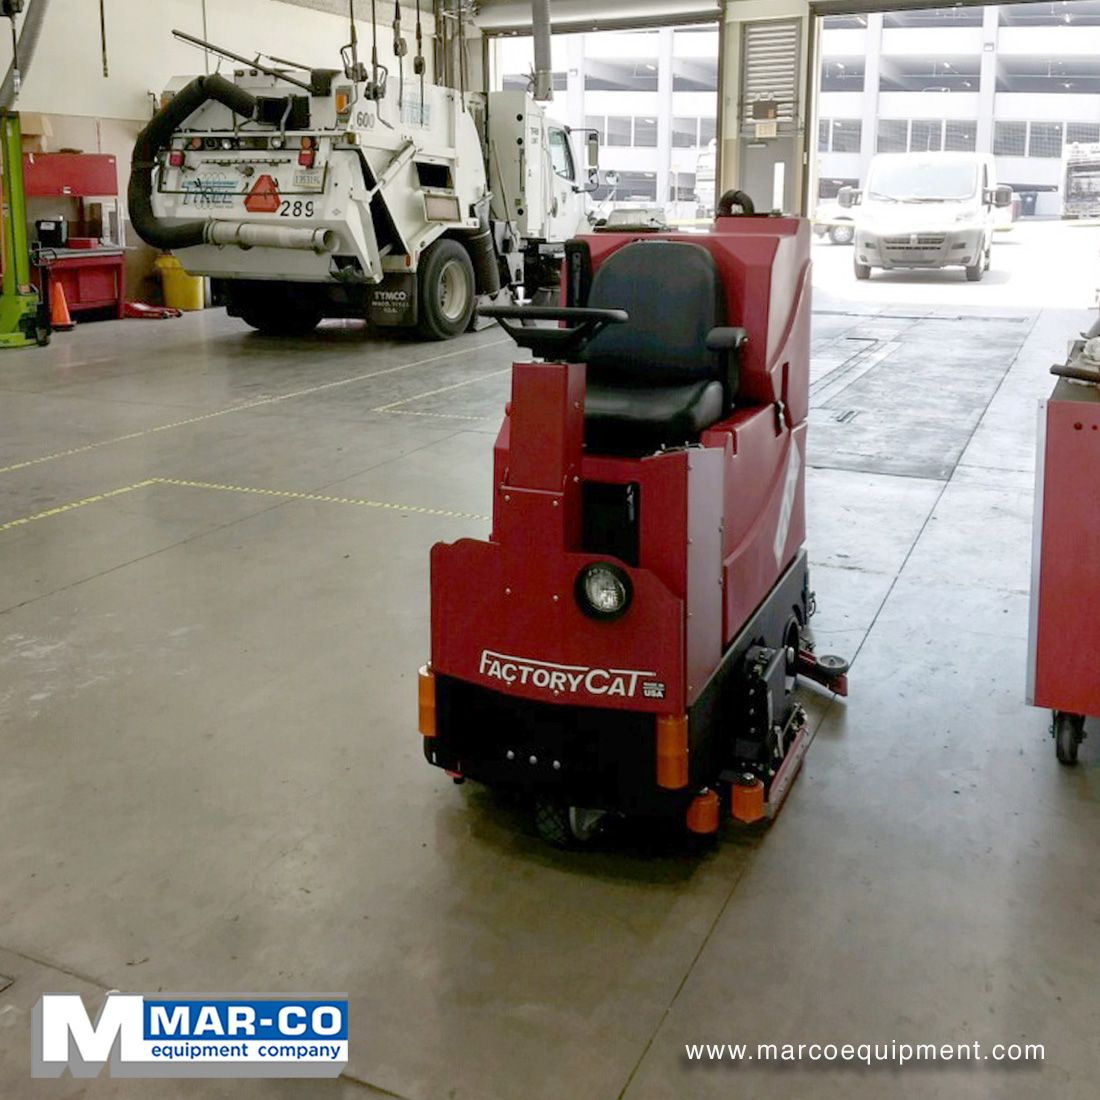 From Big To Small We Carry It All A Factorycat Gtx Sits At It S New Home And Awaits It S Orders Marcoequipment O Floor Scrubbers Scrubbers Floor Sweepers